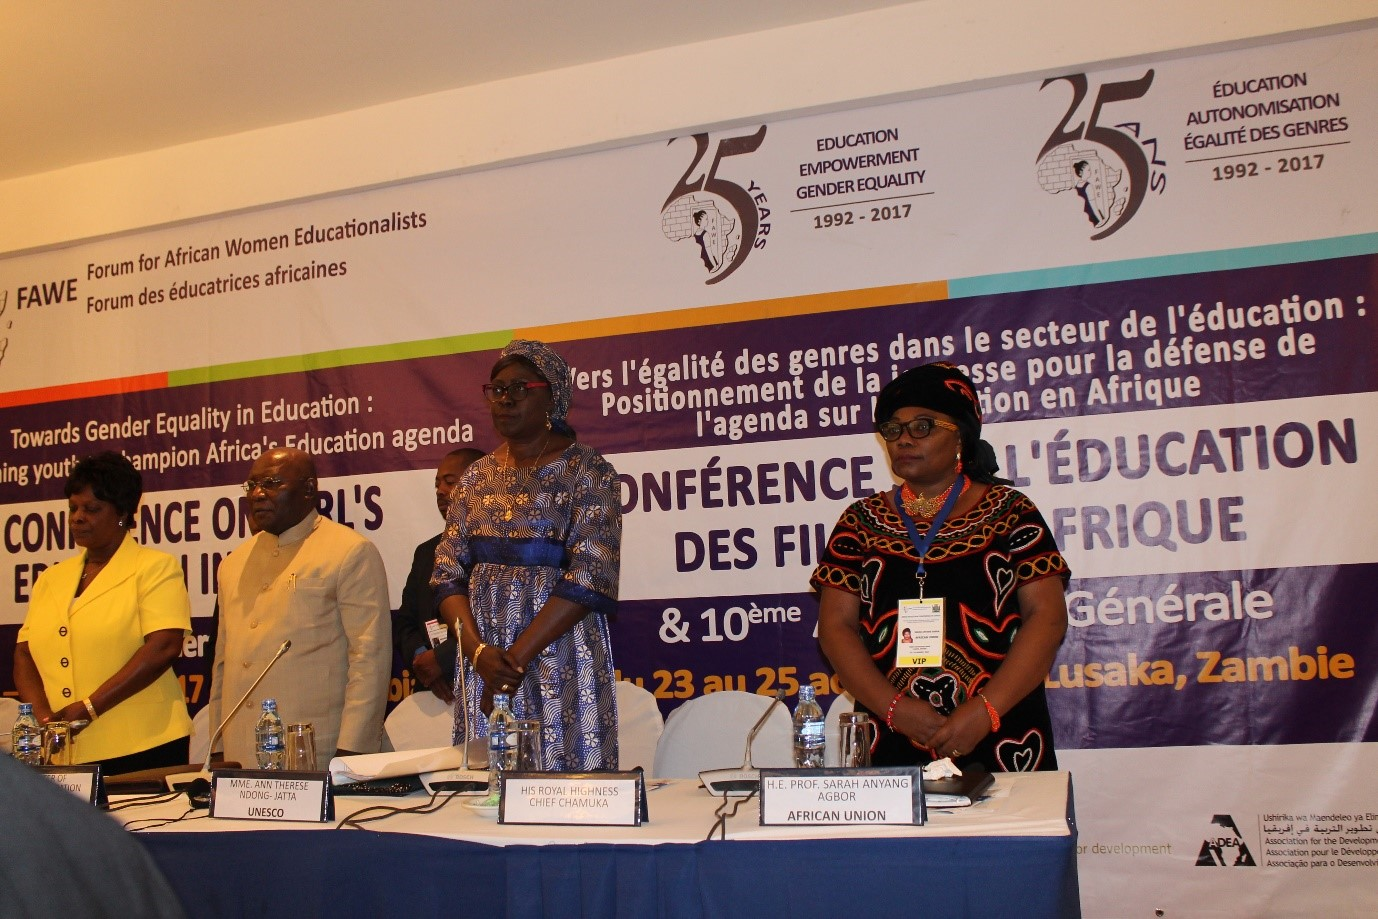 Conference on African Girls' Education in Africa Towards gender